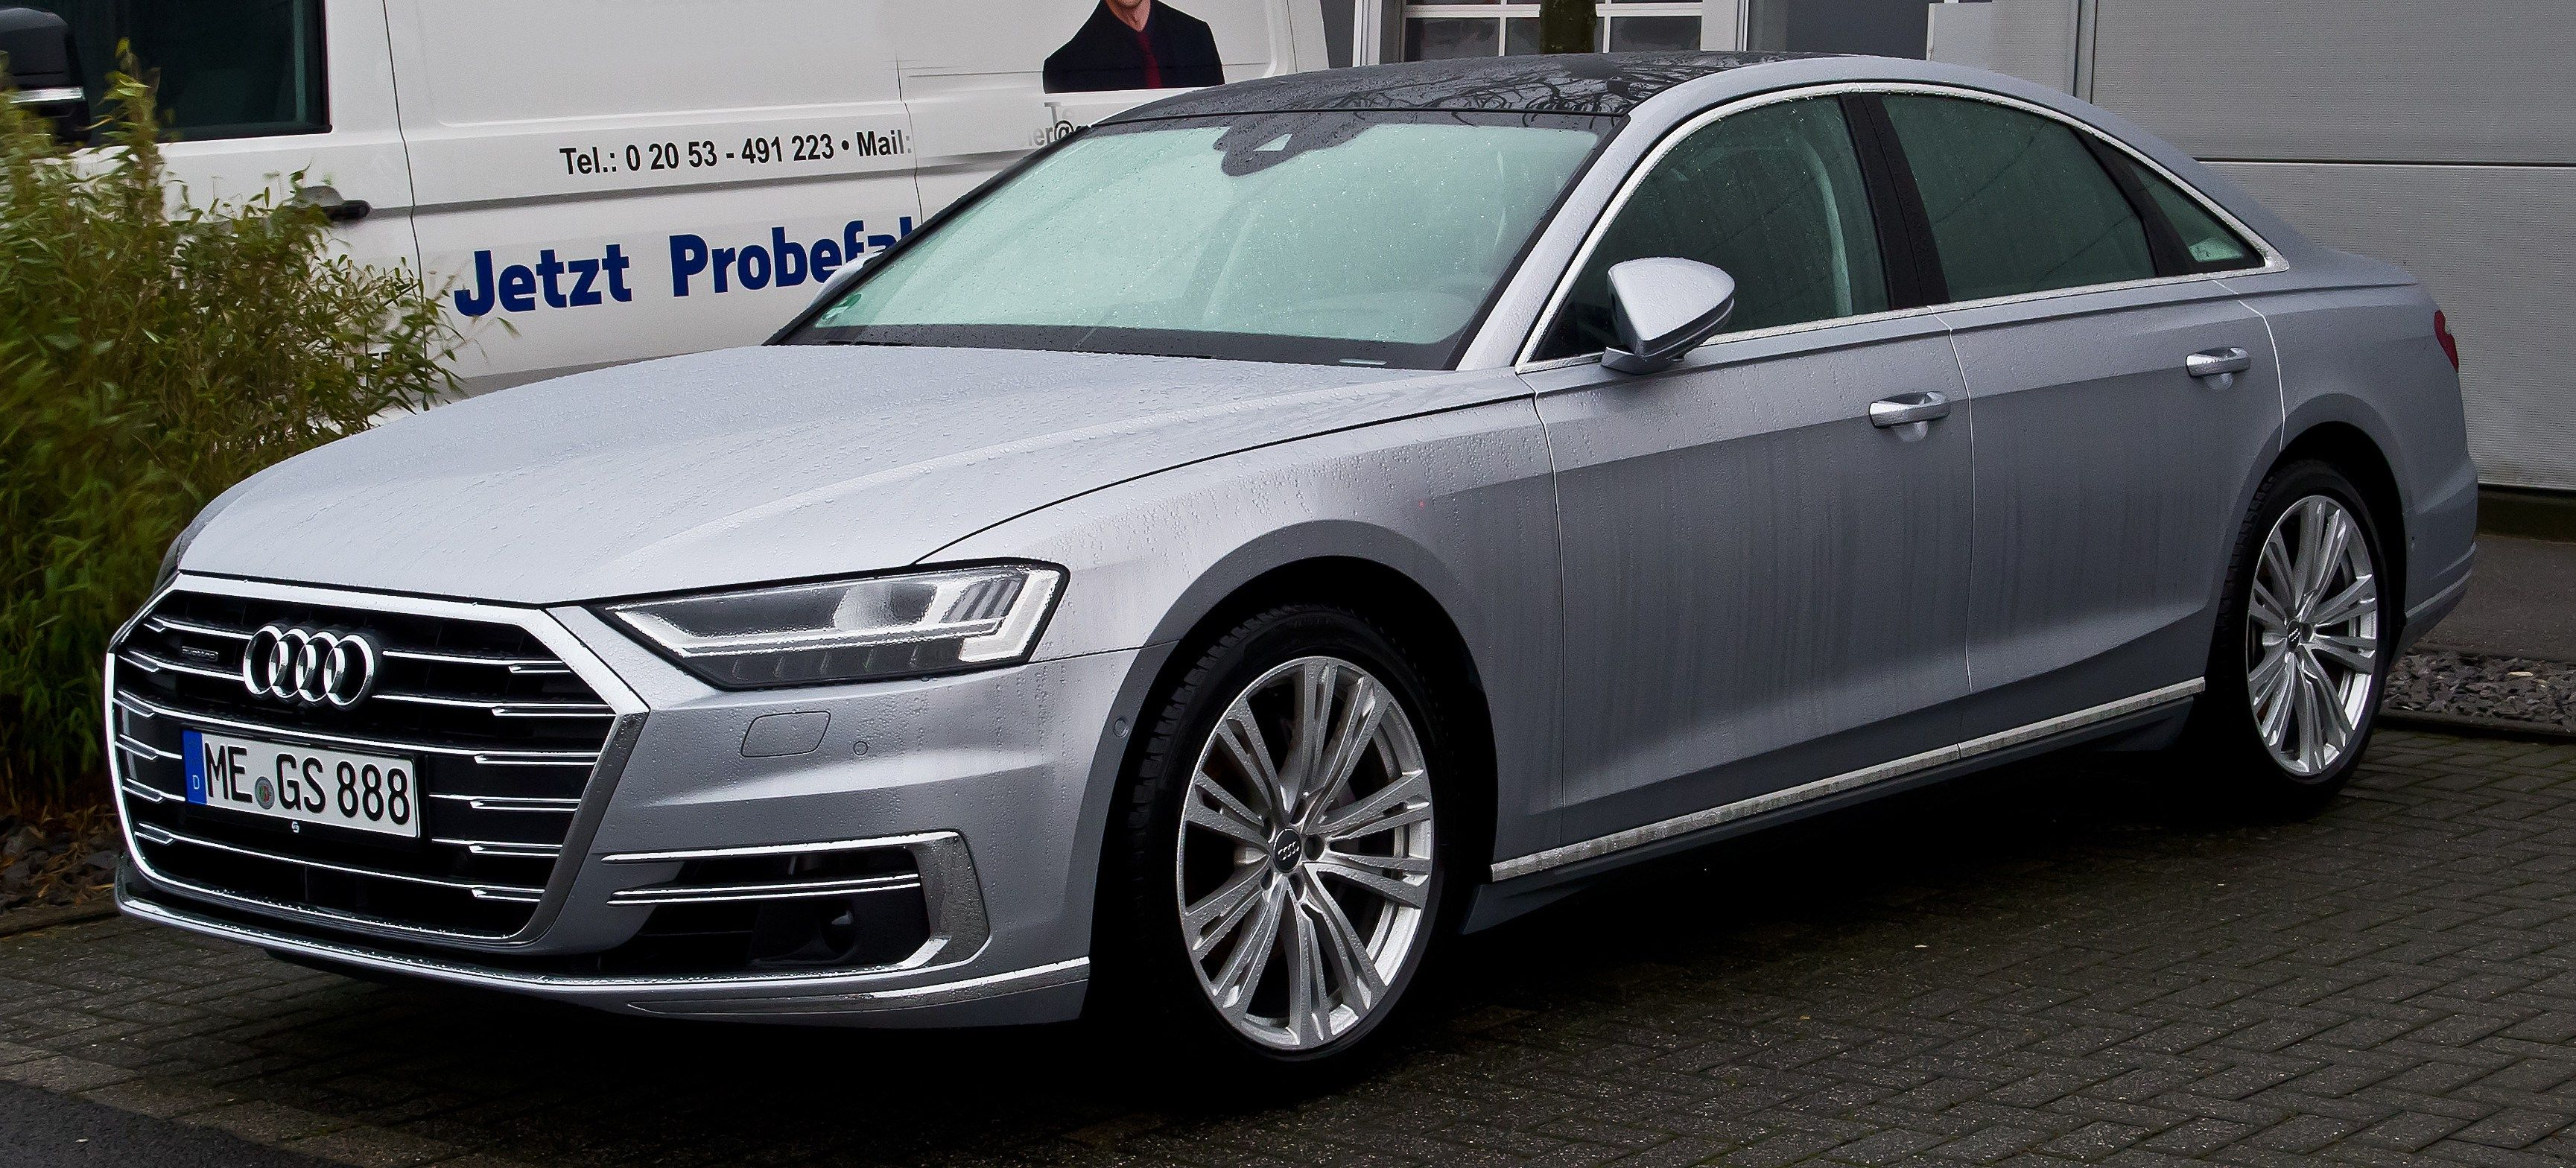 New Audi S4 2020 Picture With Images Audi A8 Audi S5 Audi